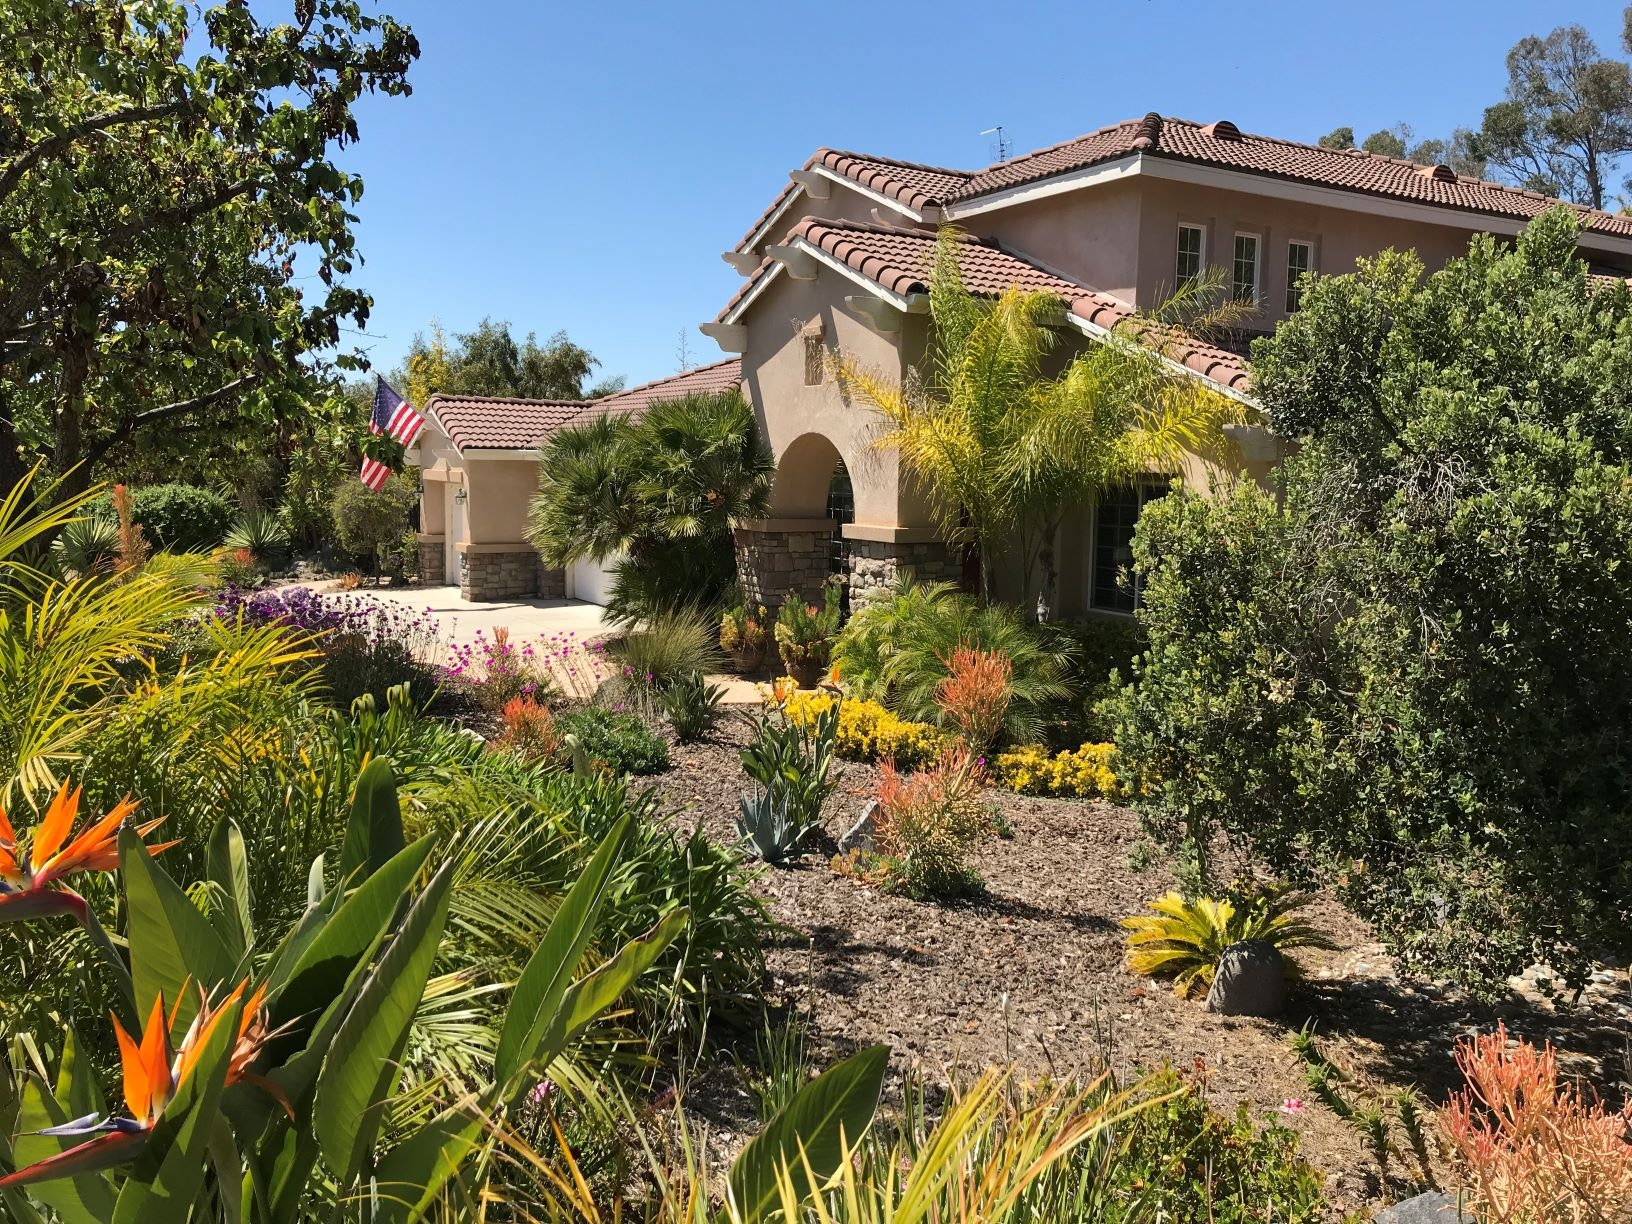 Front yard with water wise landscaping, such as bird of paradise, sea lavender, mulch and river rocks.